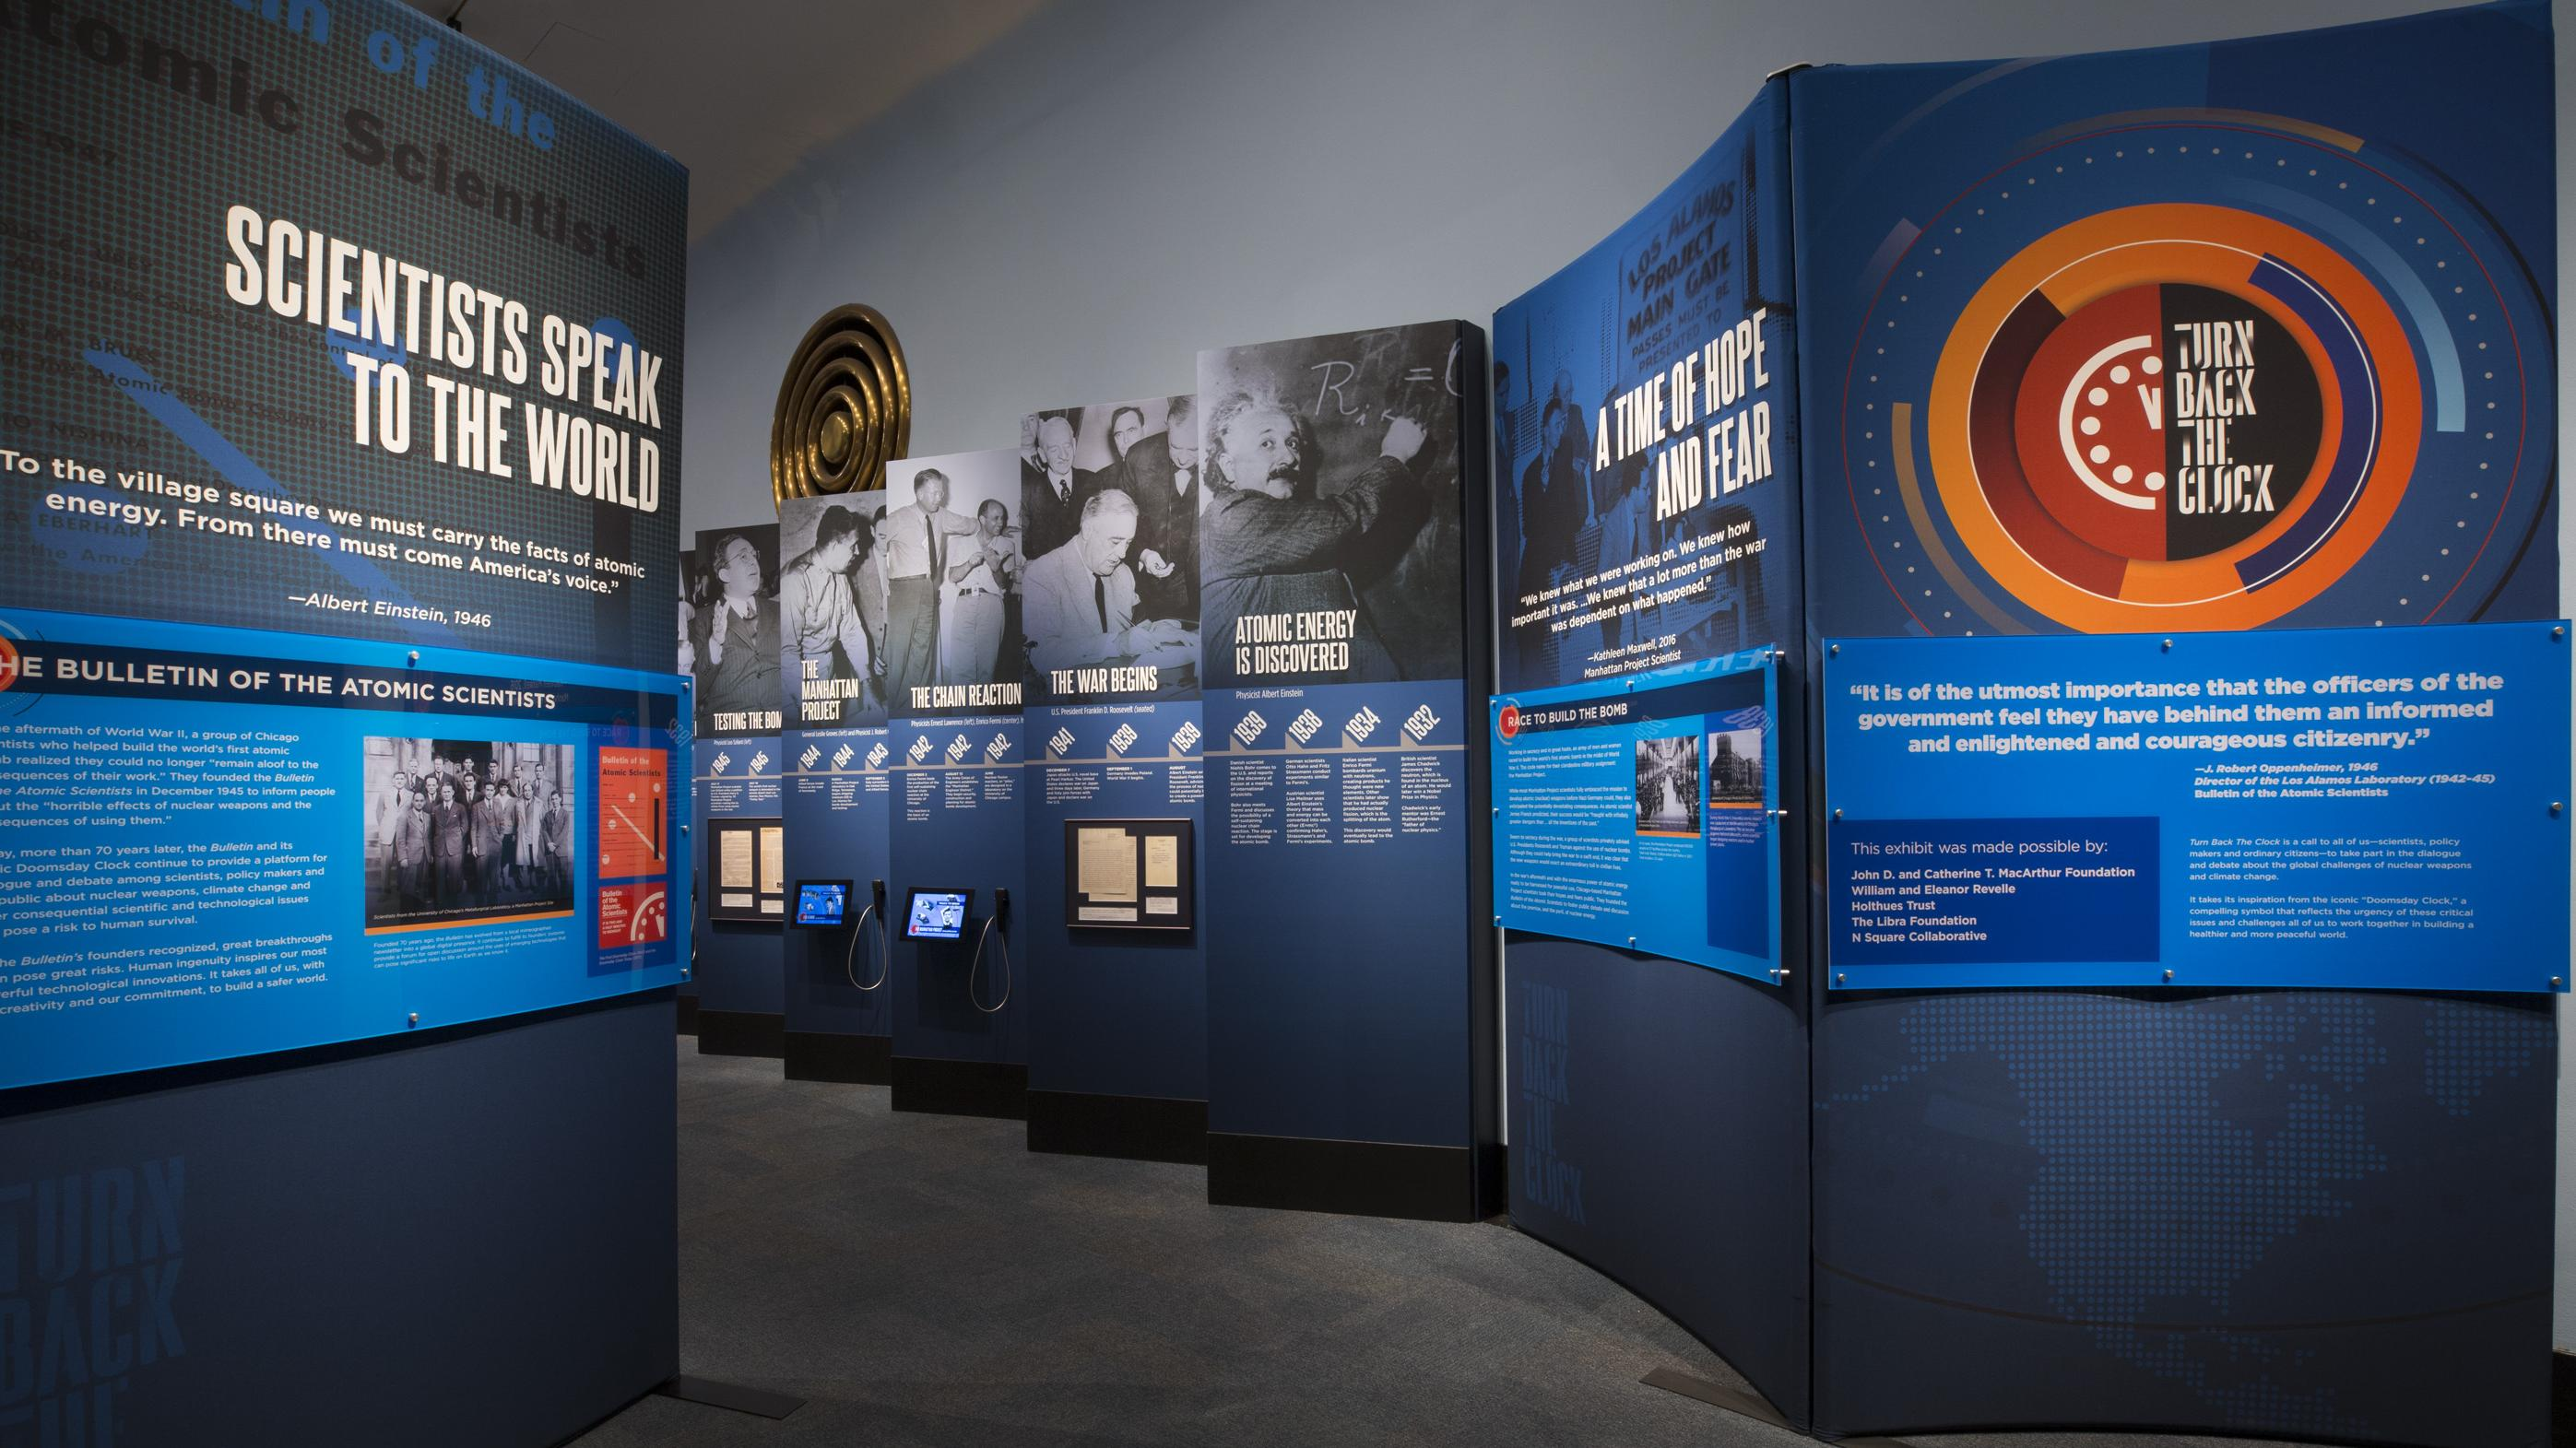 Turn Back the Clock - Museum of Science and Industry